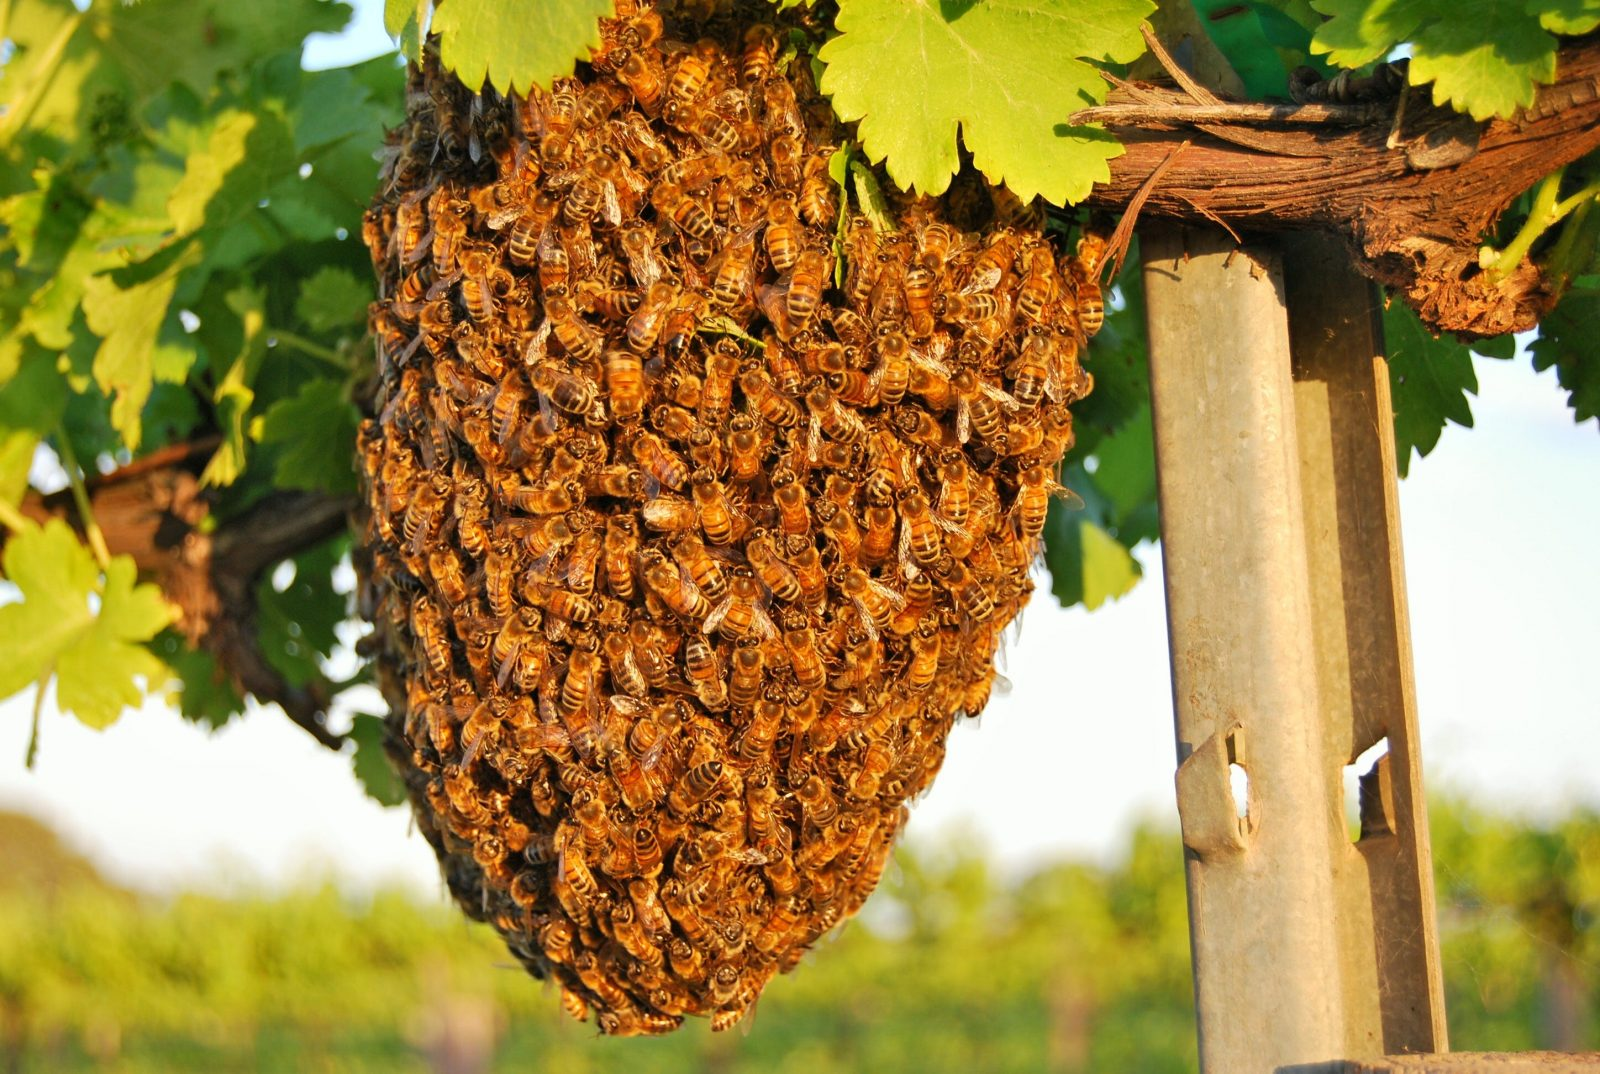 A swarm of bees just taking a break in the vineyard